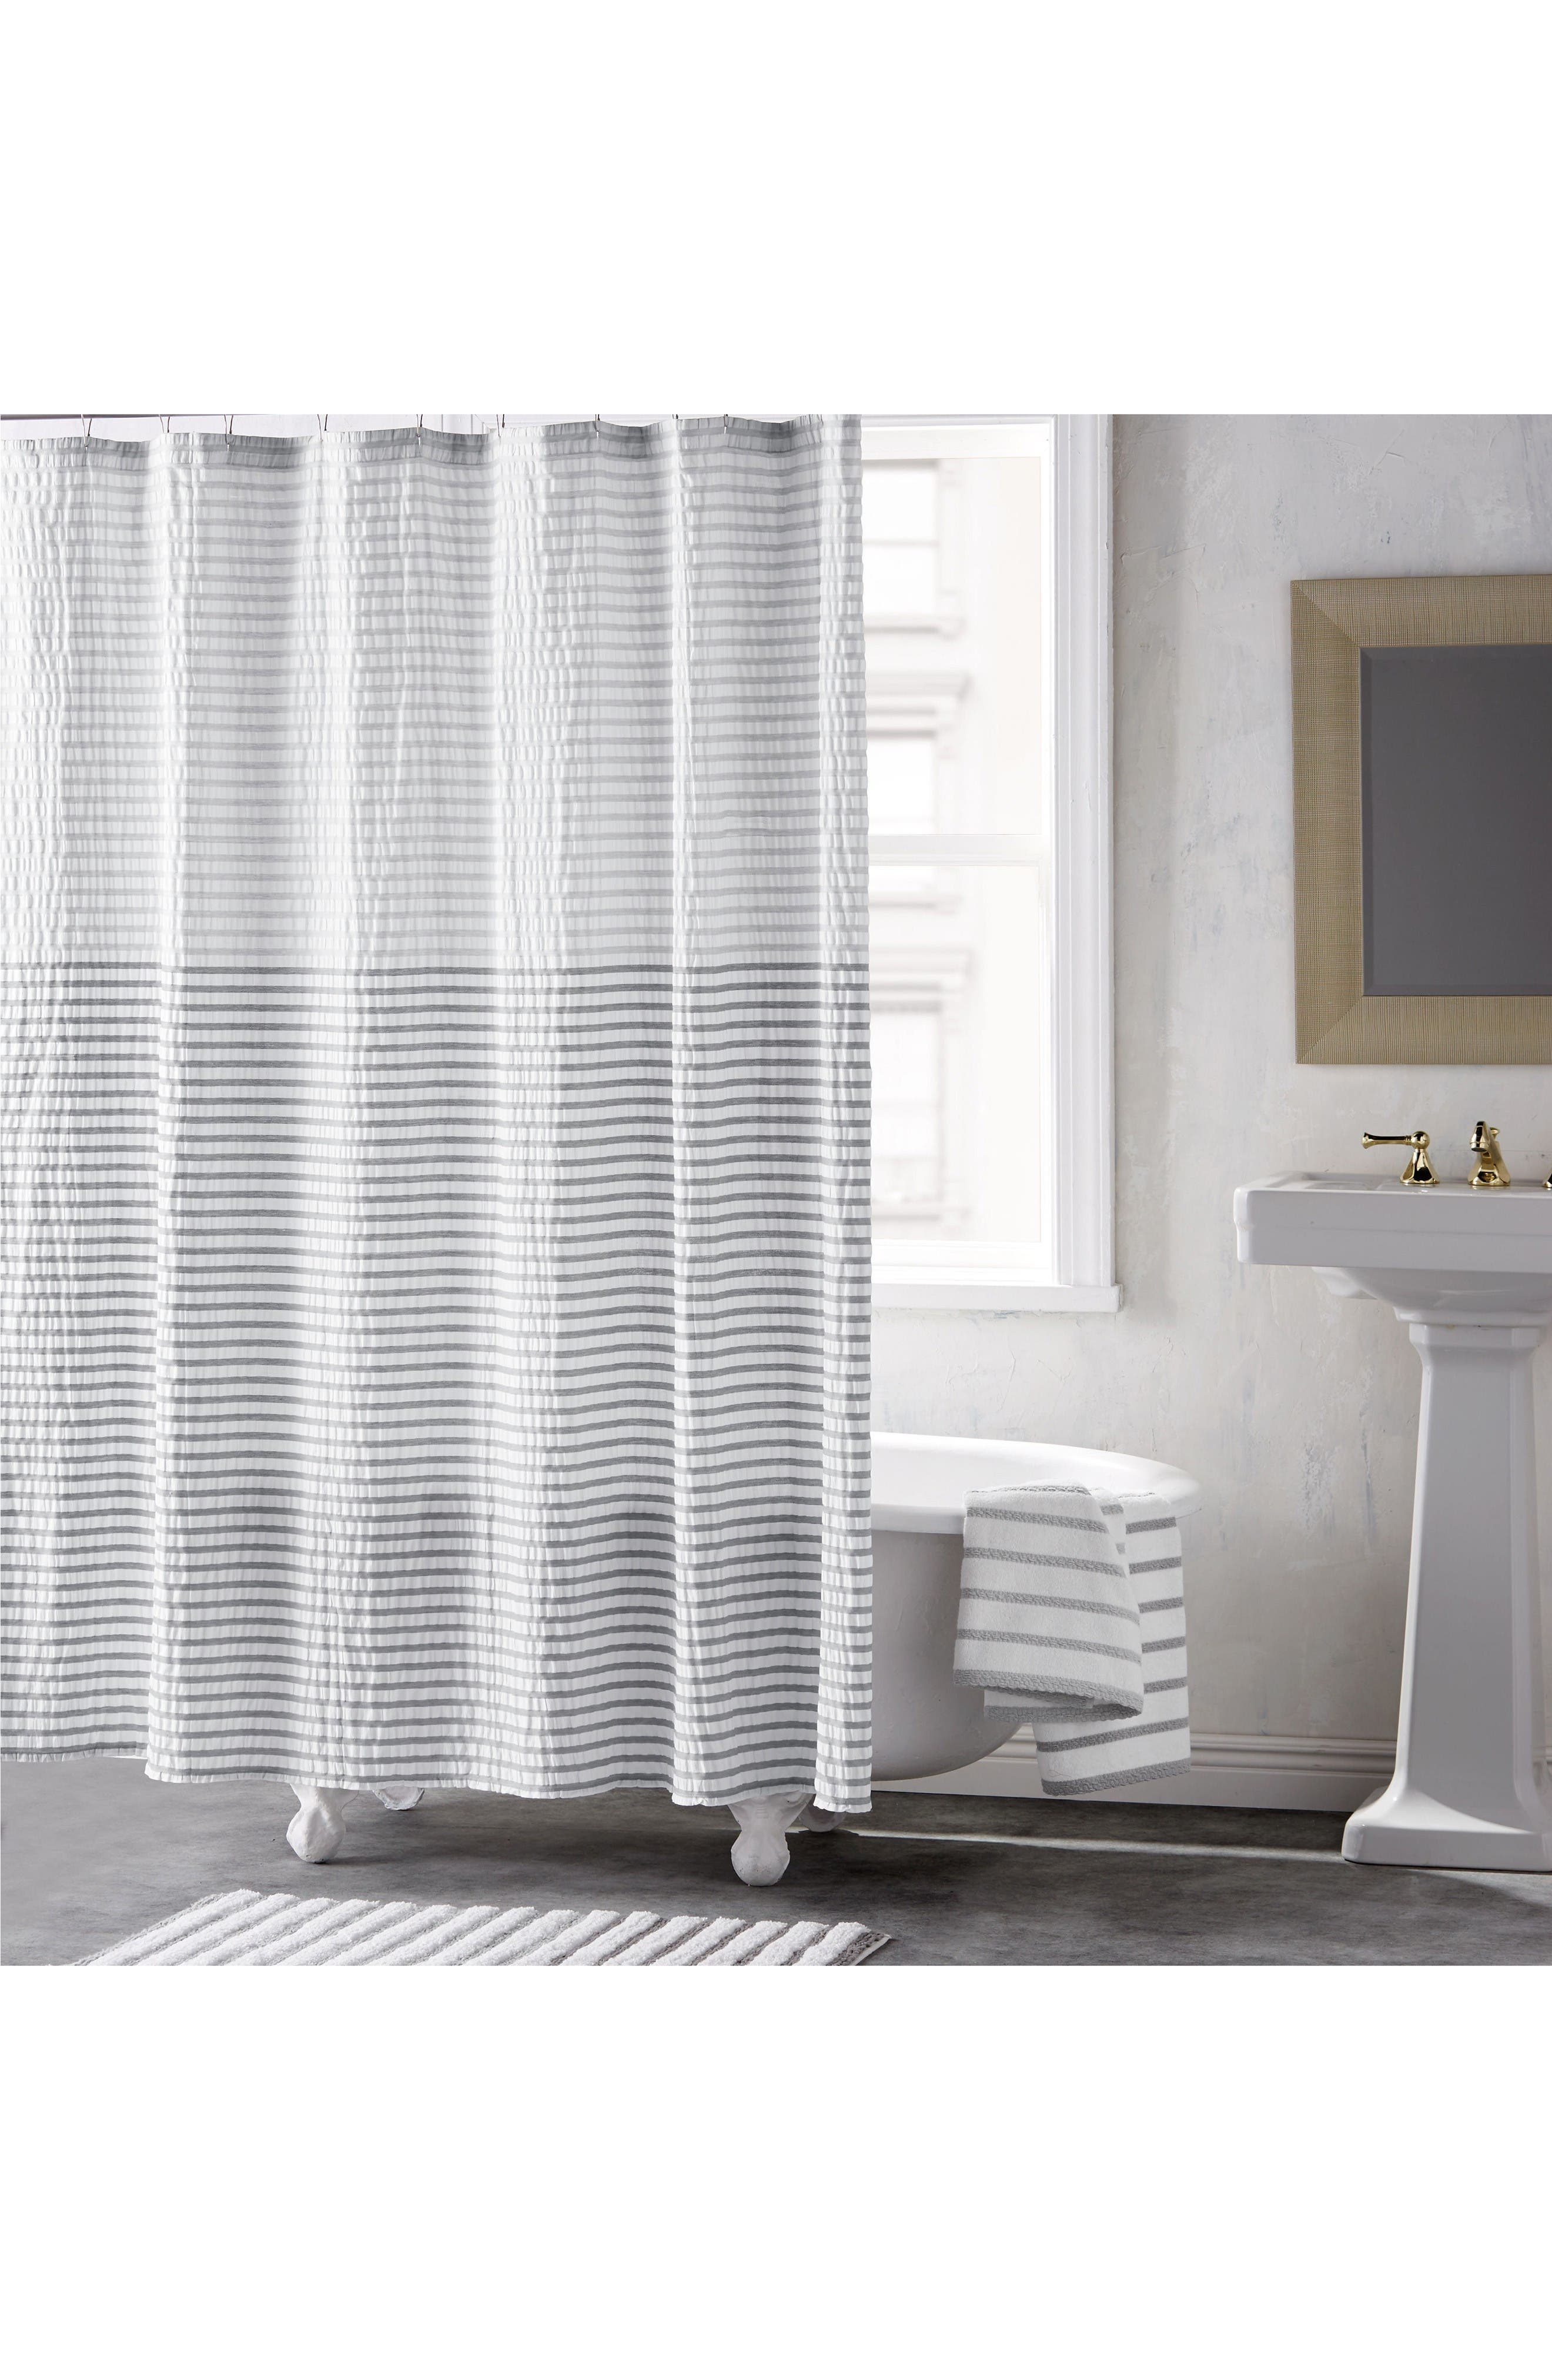 Shower Curtains Nordstrom - Beige and gray shower curtain